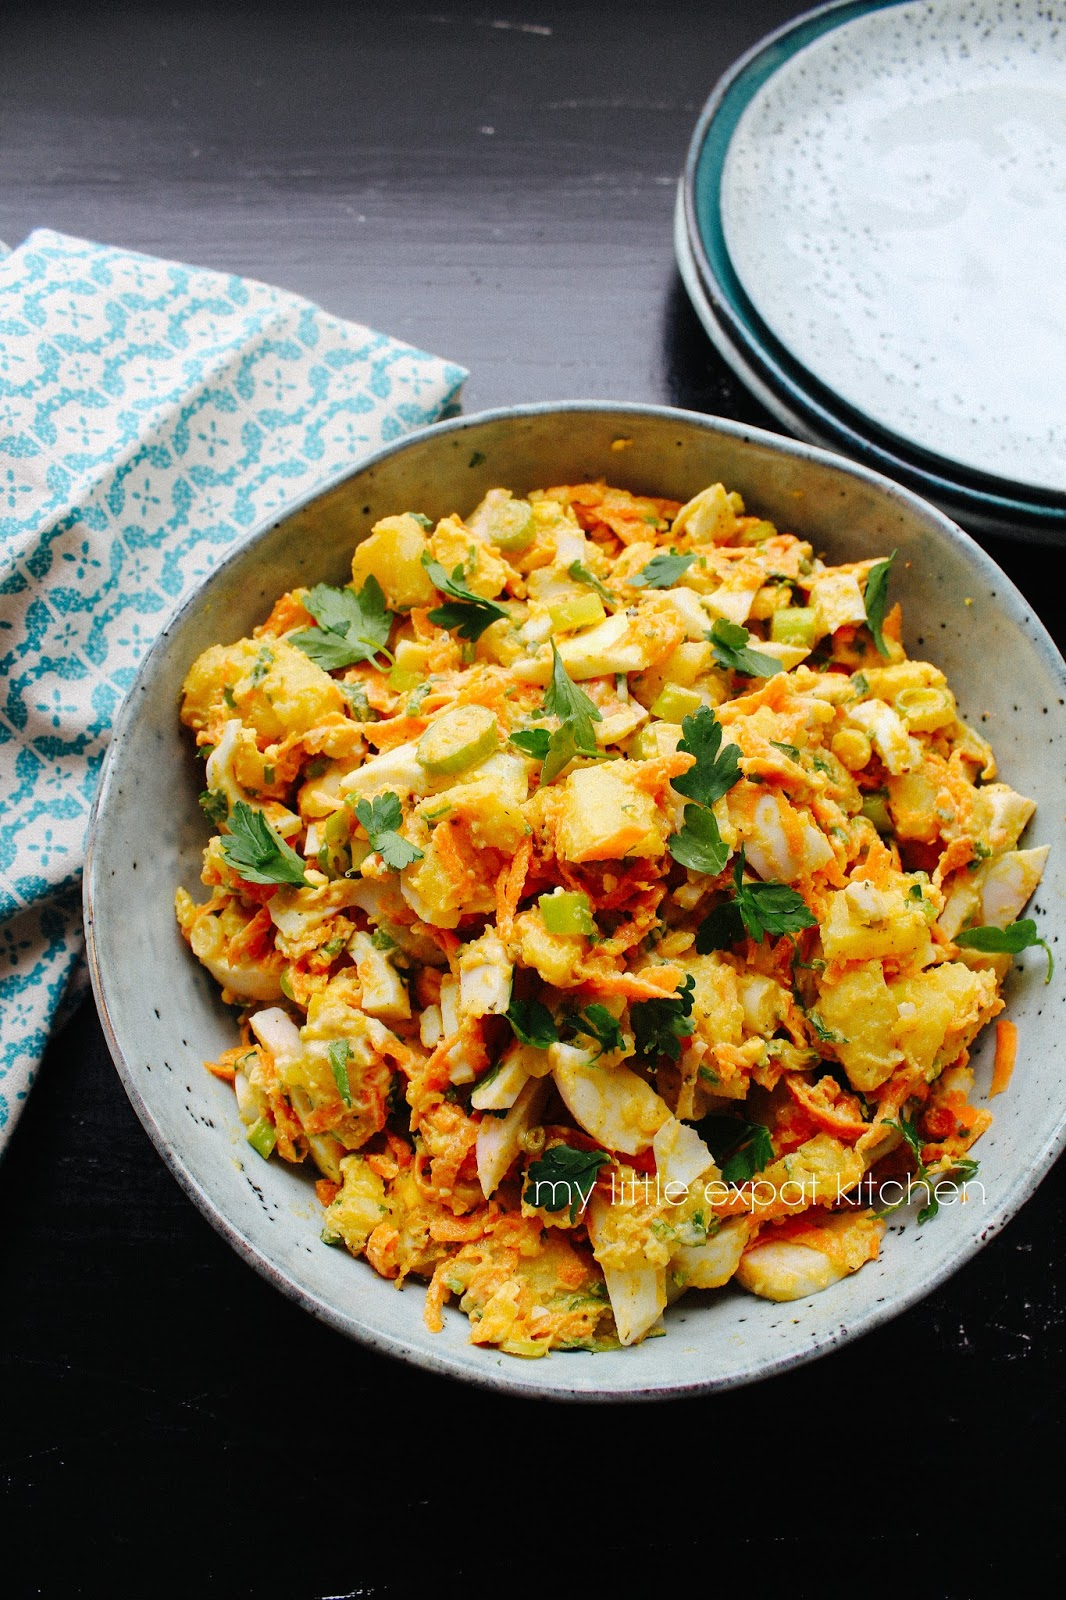 My little expat kitchen potato and egg salad with carrots and spices sweet paprika dried mint cardamom ginger cumin all present but not overwhelming making this otherwise simple salad particularly scrumptious forumfinder Image collections